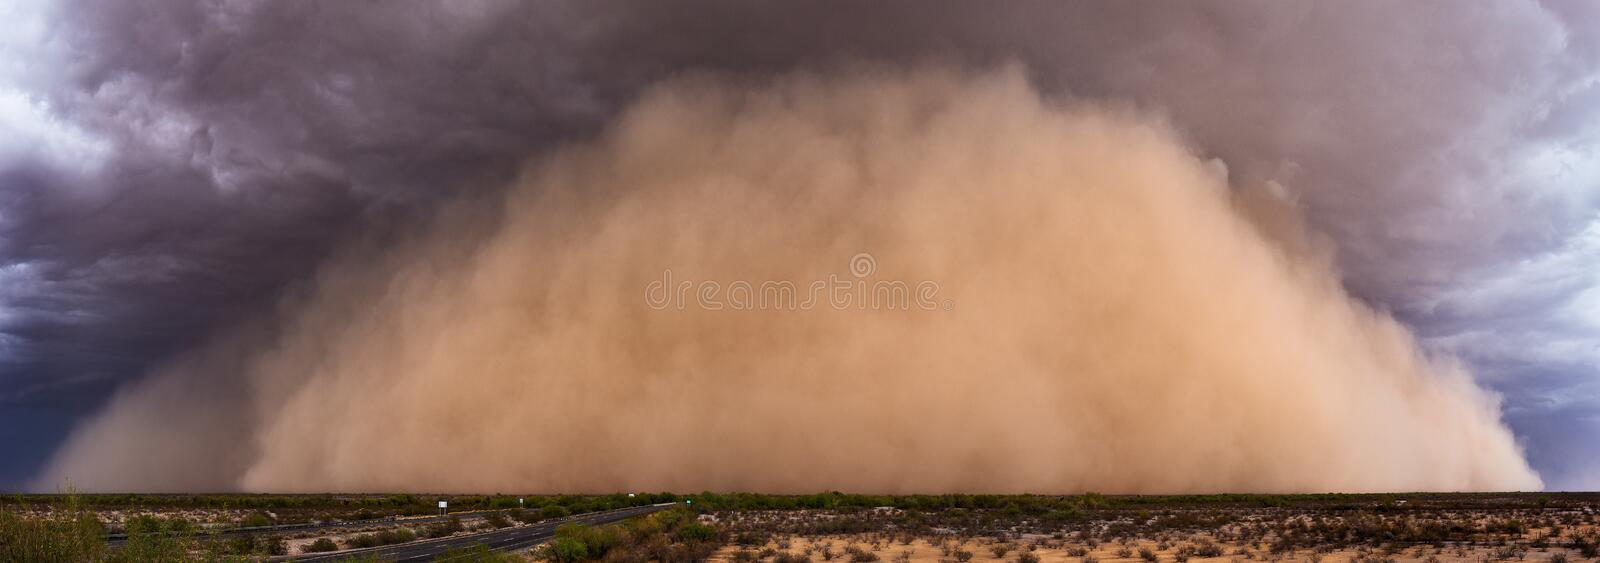 Dust storm panorama in the Arizona desert. stock photo